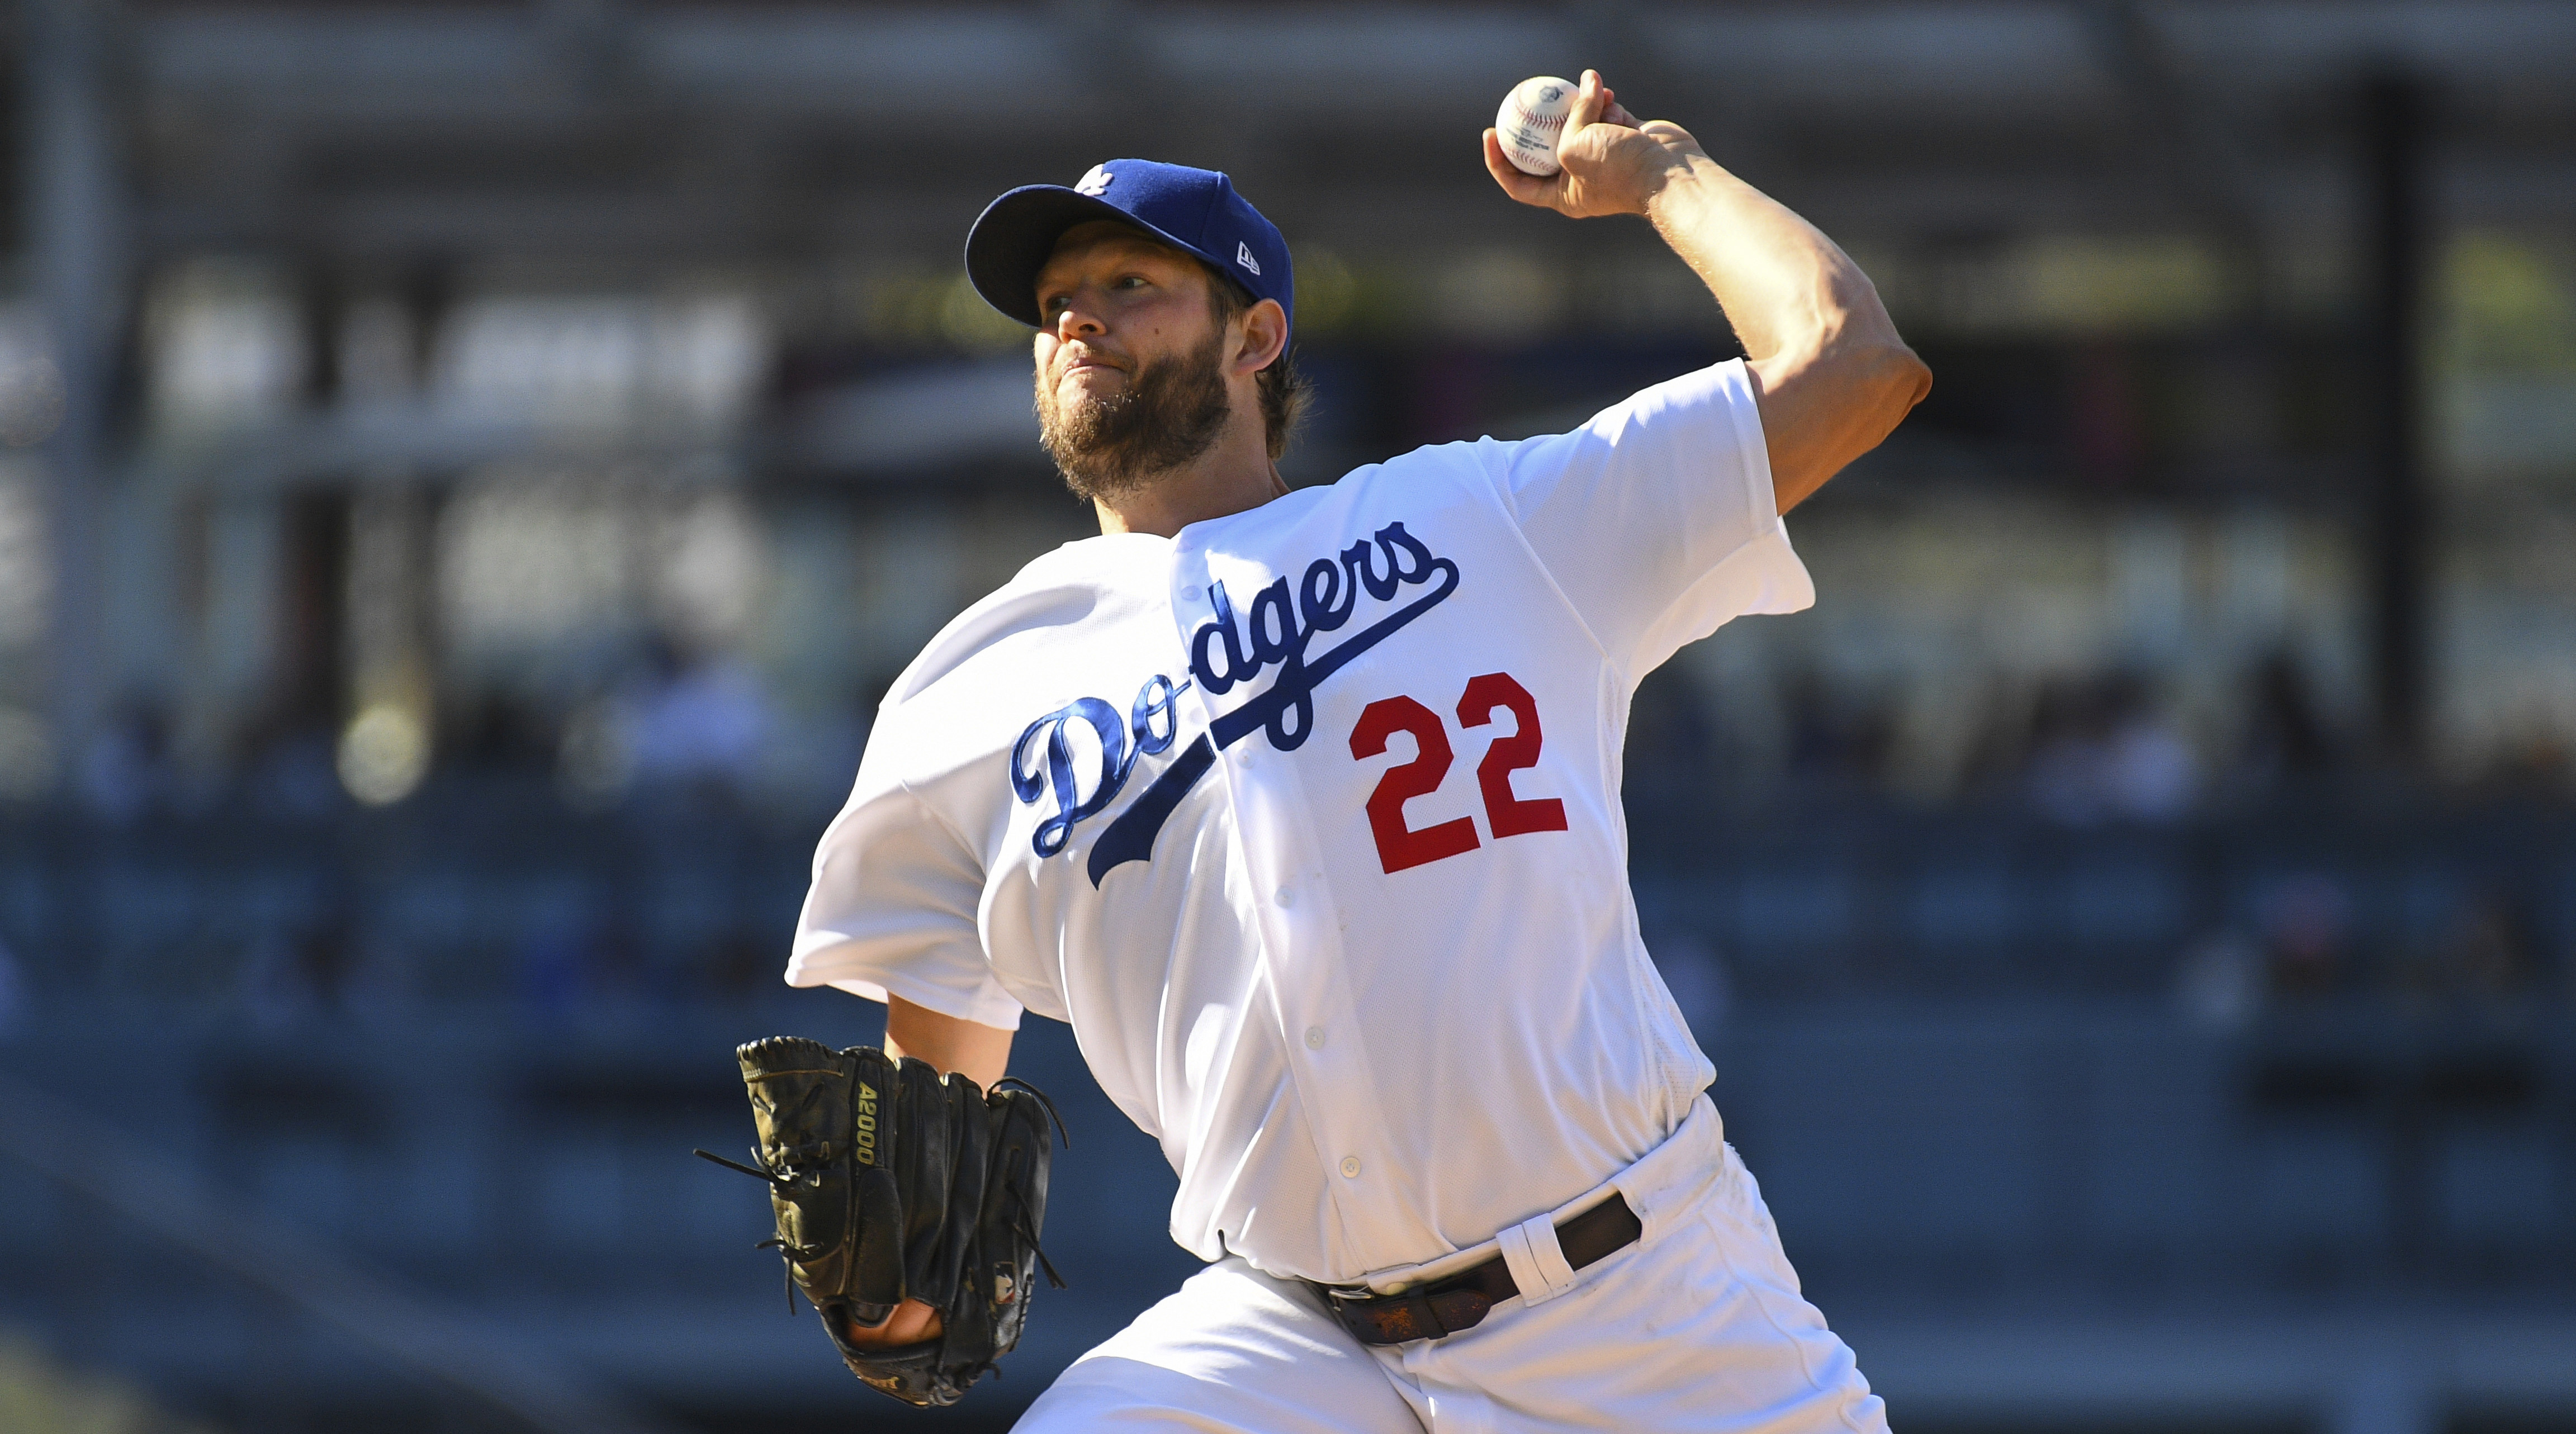 clayton-kershaw-DL-lower-back-strain